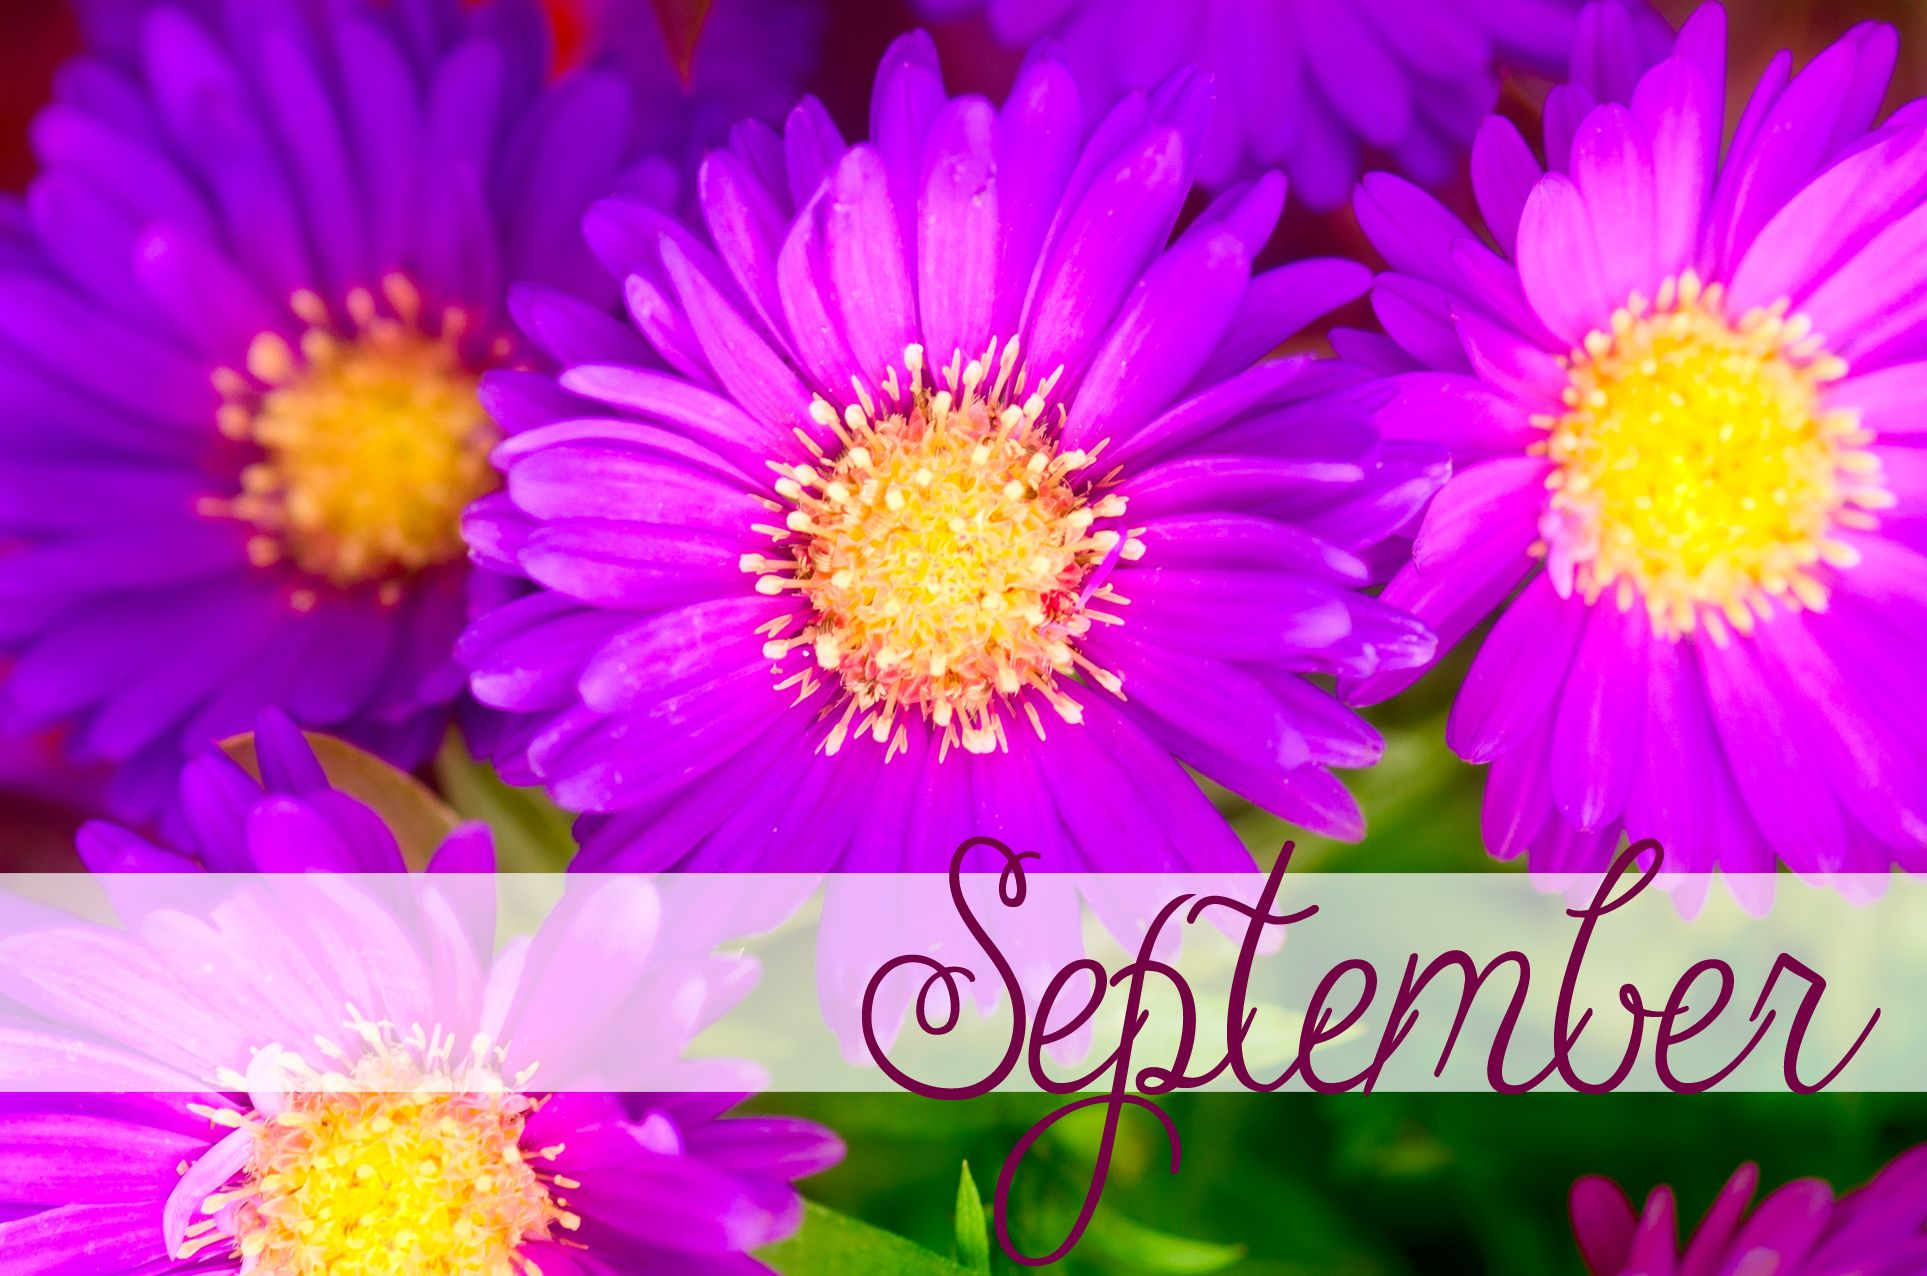 Happy September Birthday September Birthdflower Is The Aster And